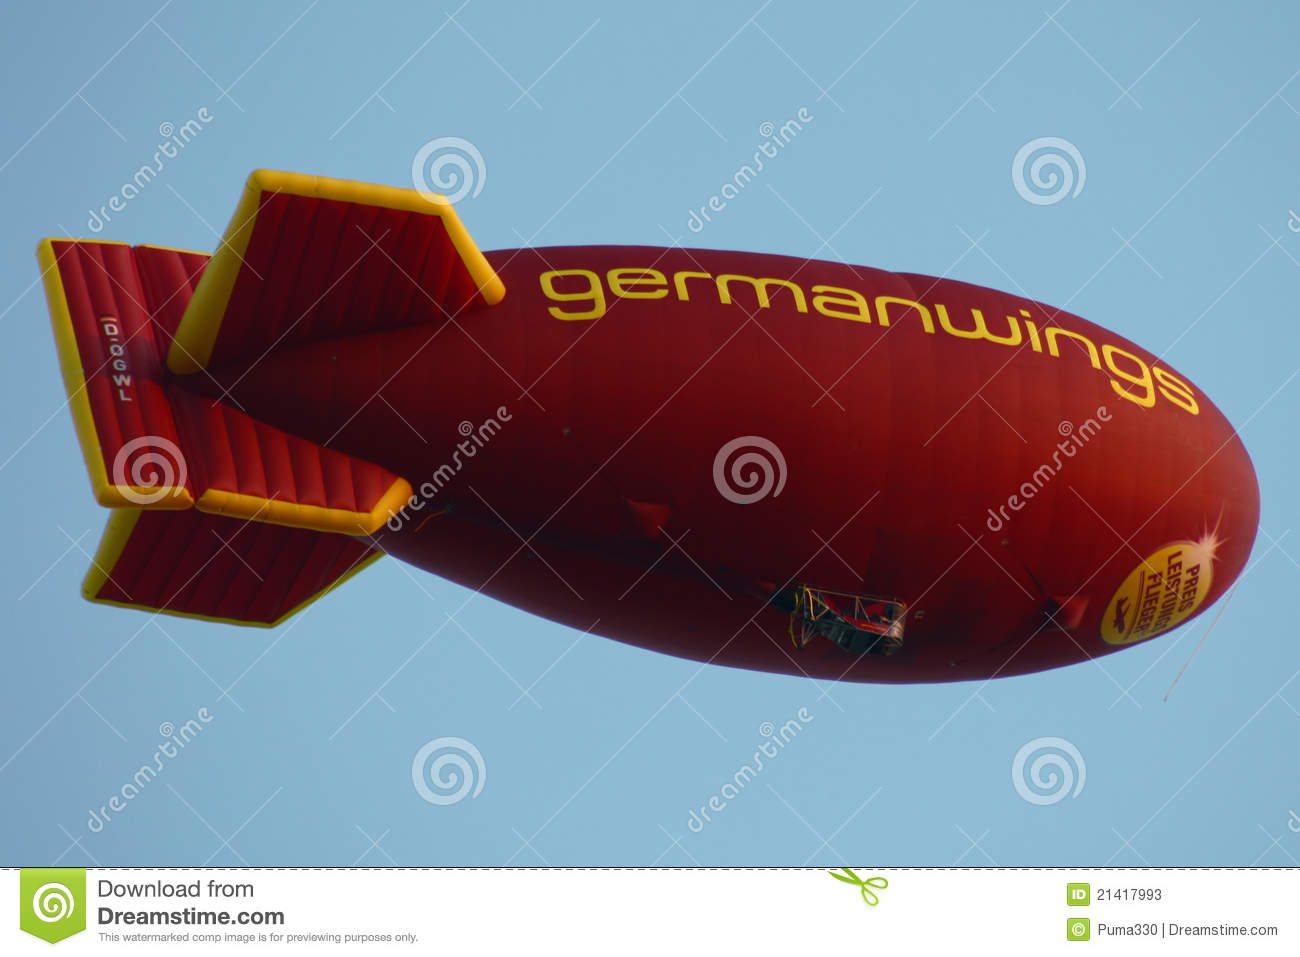 De blimp van Germanwings